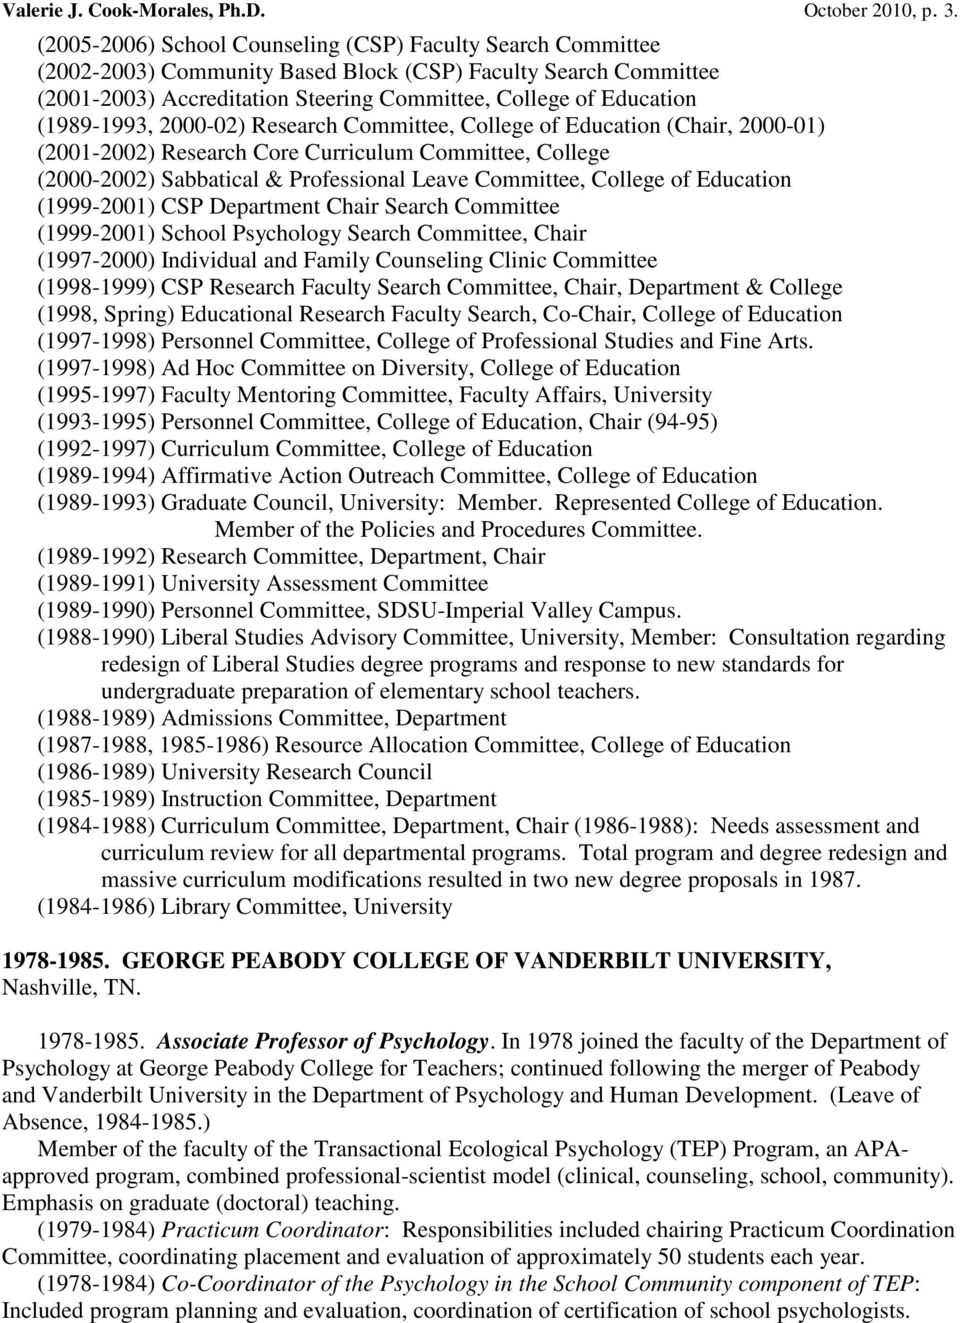 (1989-1993, 2000-02) Research Committee, College of Education (Chair, 2000-01) (2001-2002) Research Core Curriculum Committee, College (2000-2002) Sabbatical & Professional Leave Committee, College